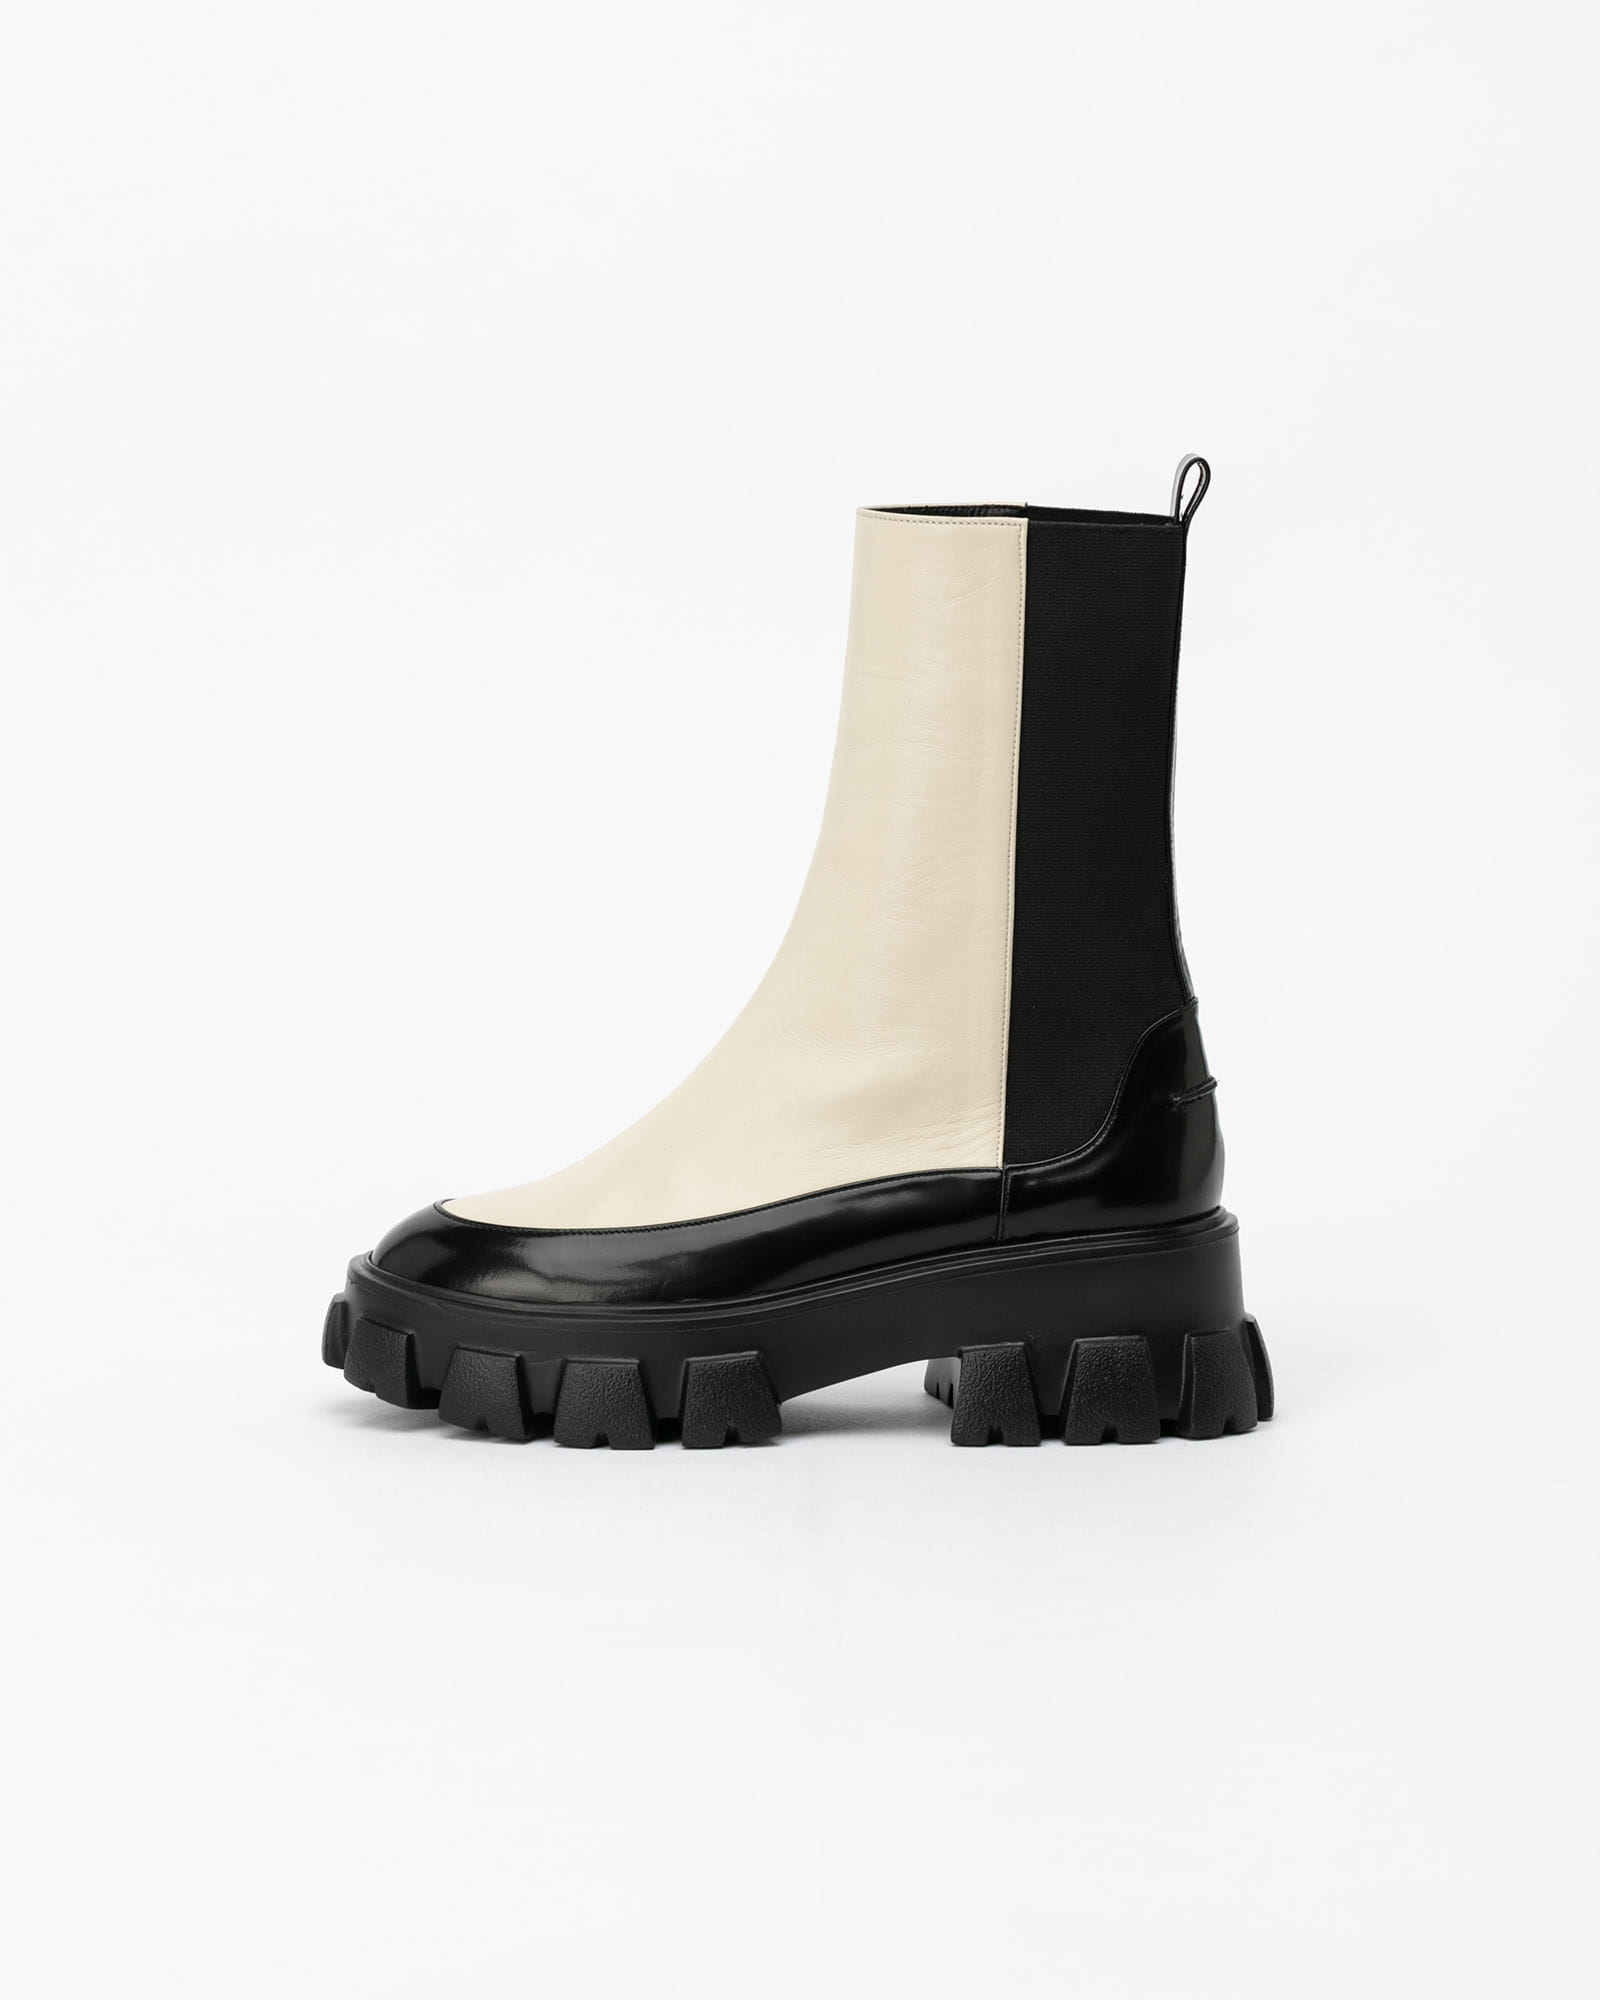 Trojan Lug-sole Chelsea Boots in Ivory